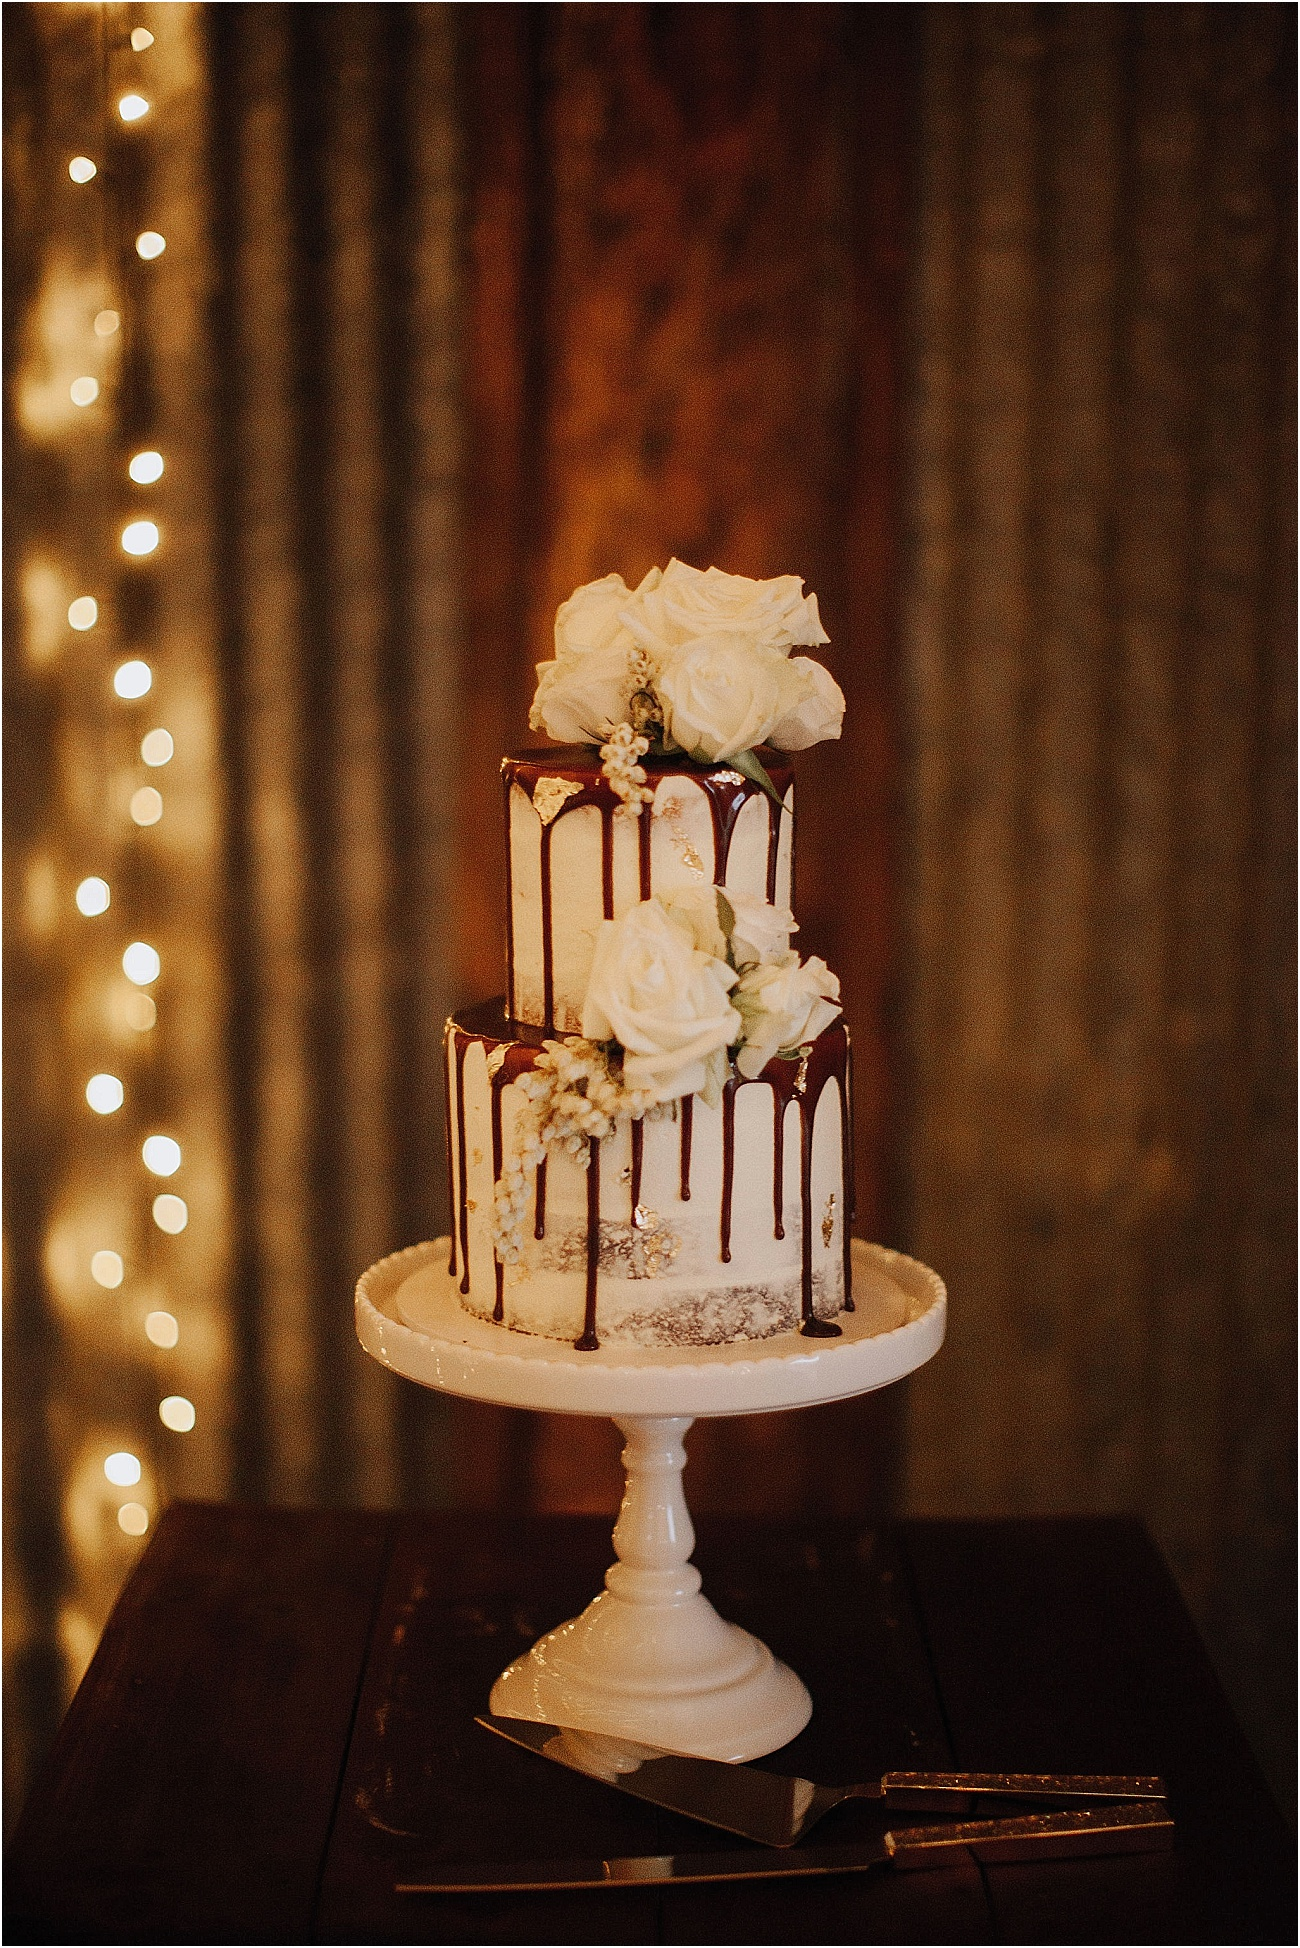 Wedding cake featuring white rose blooms